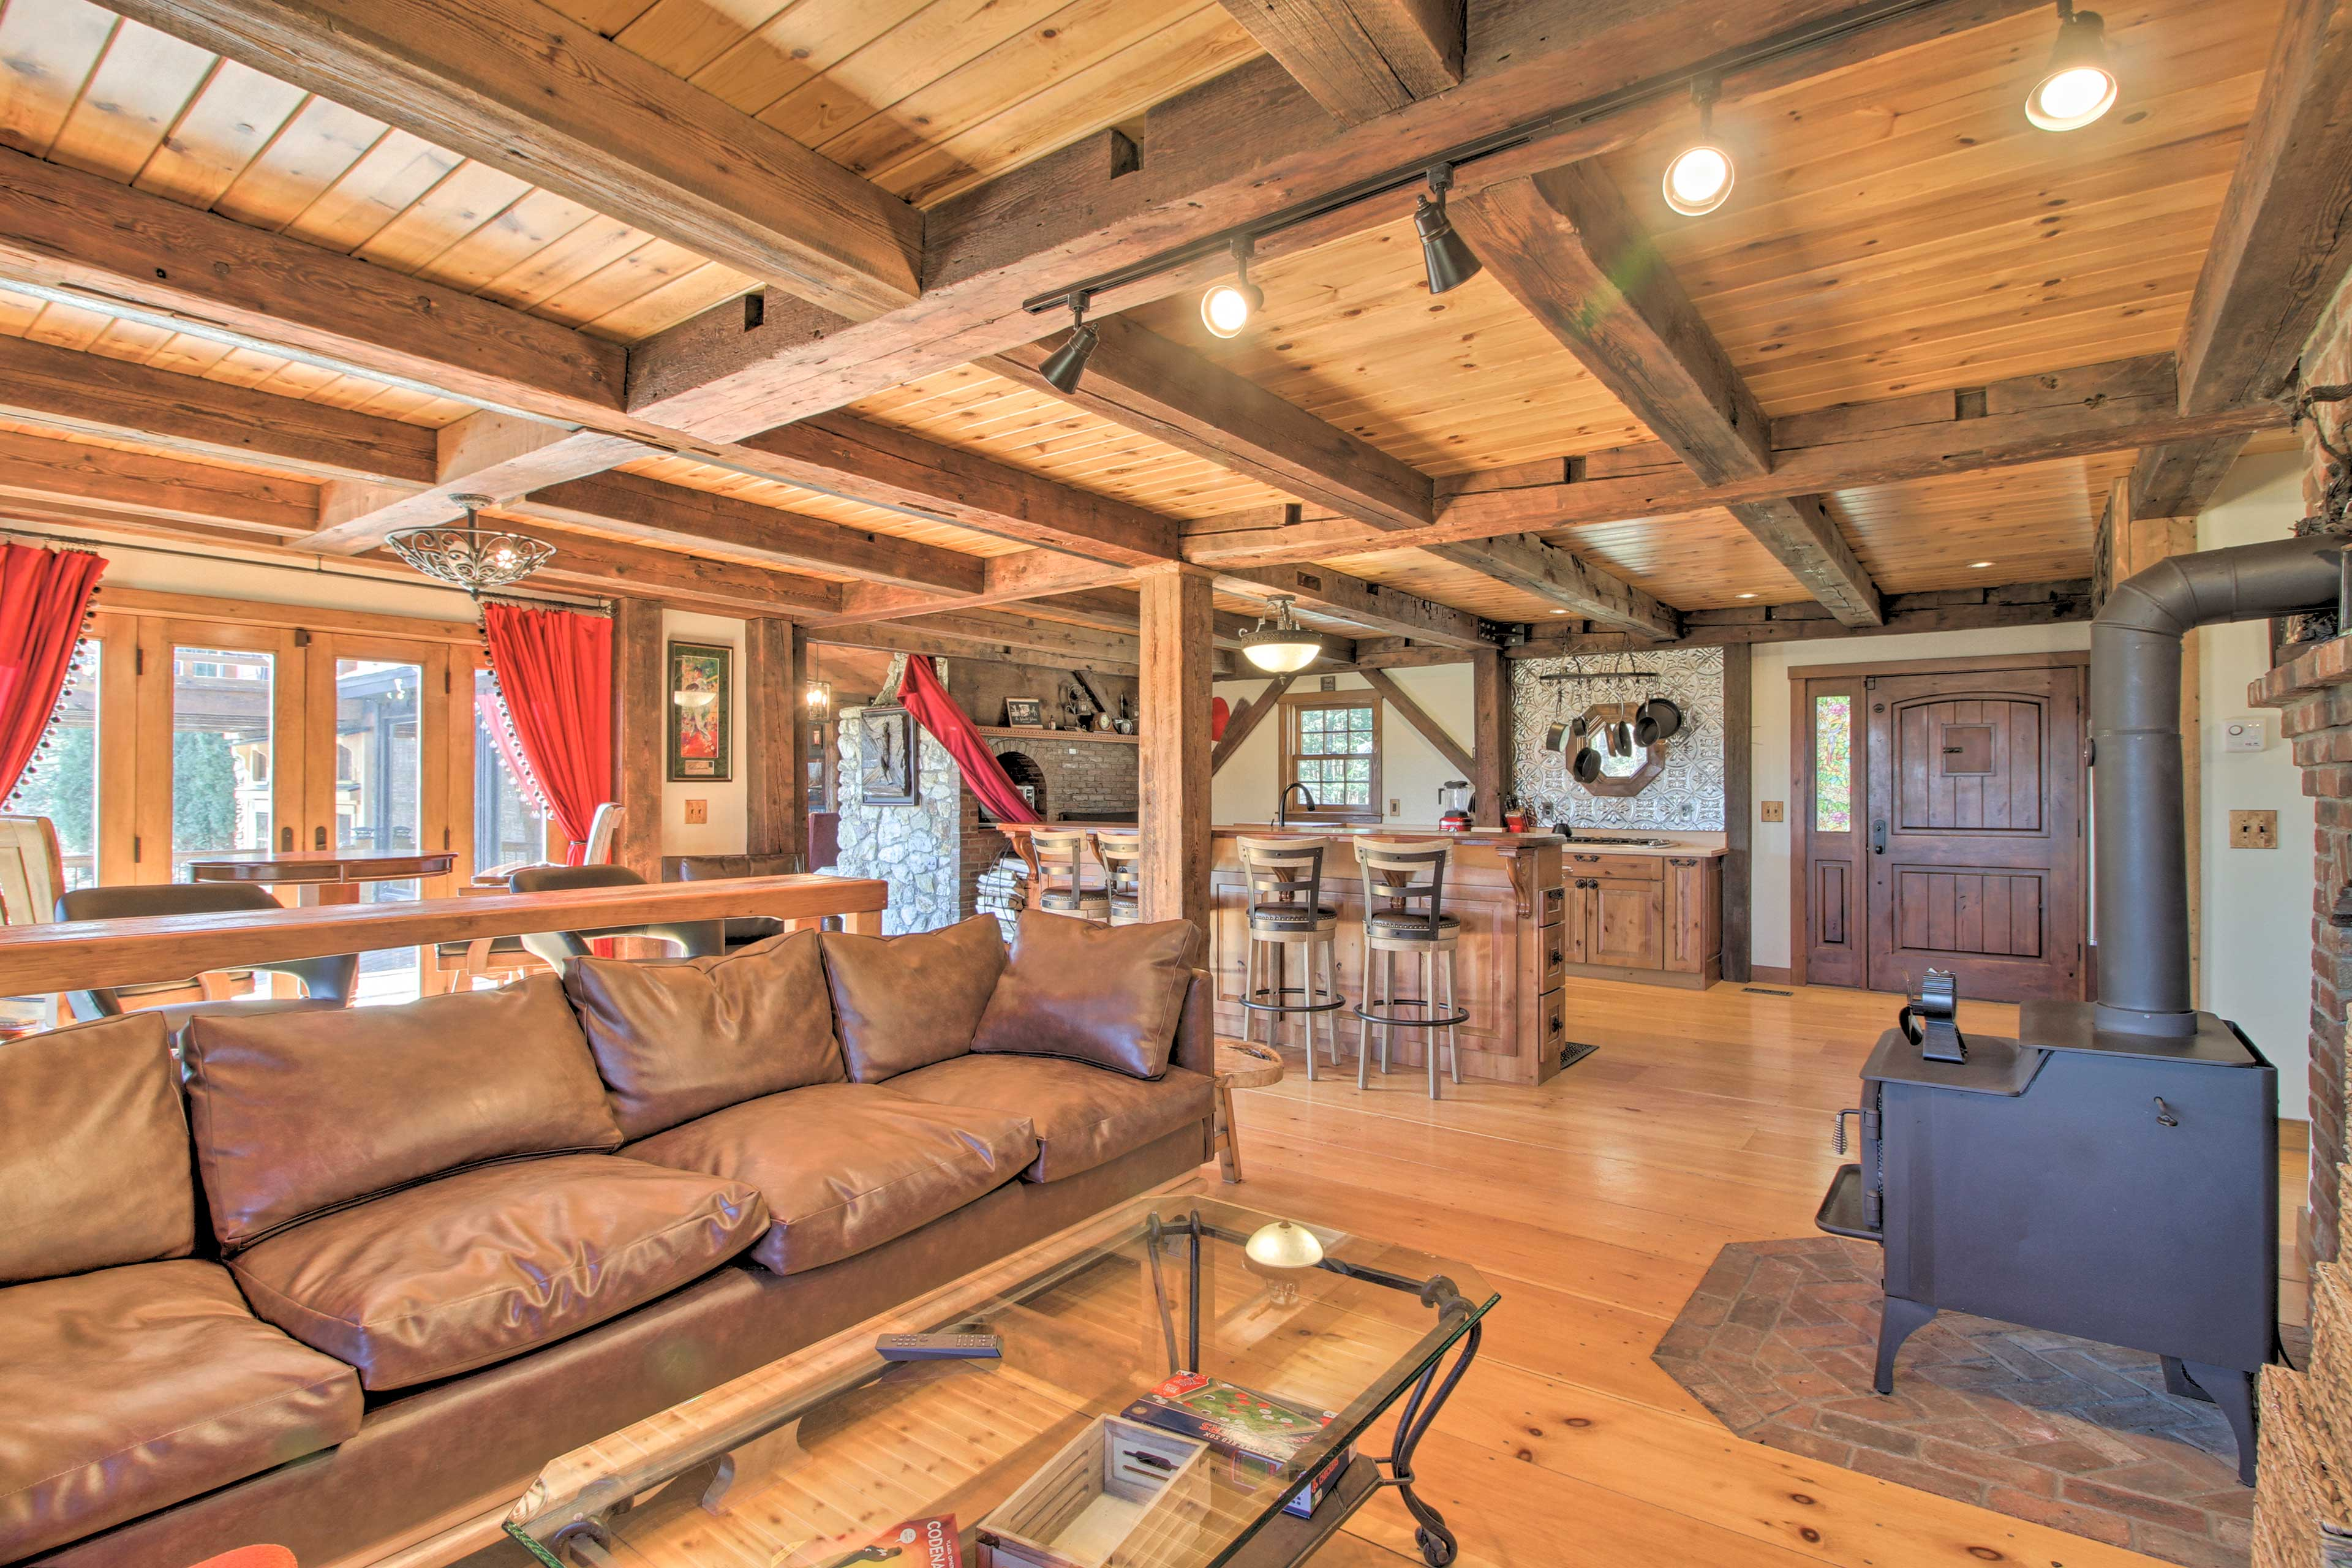 Host an event at this vacation rental and enjoy the renovated interior!